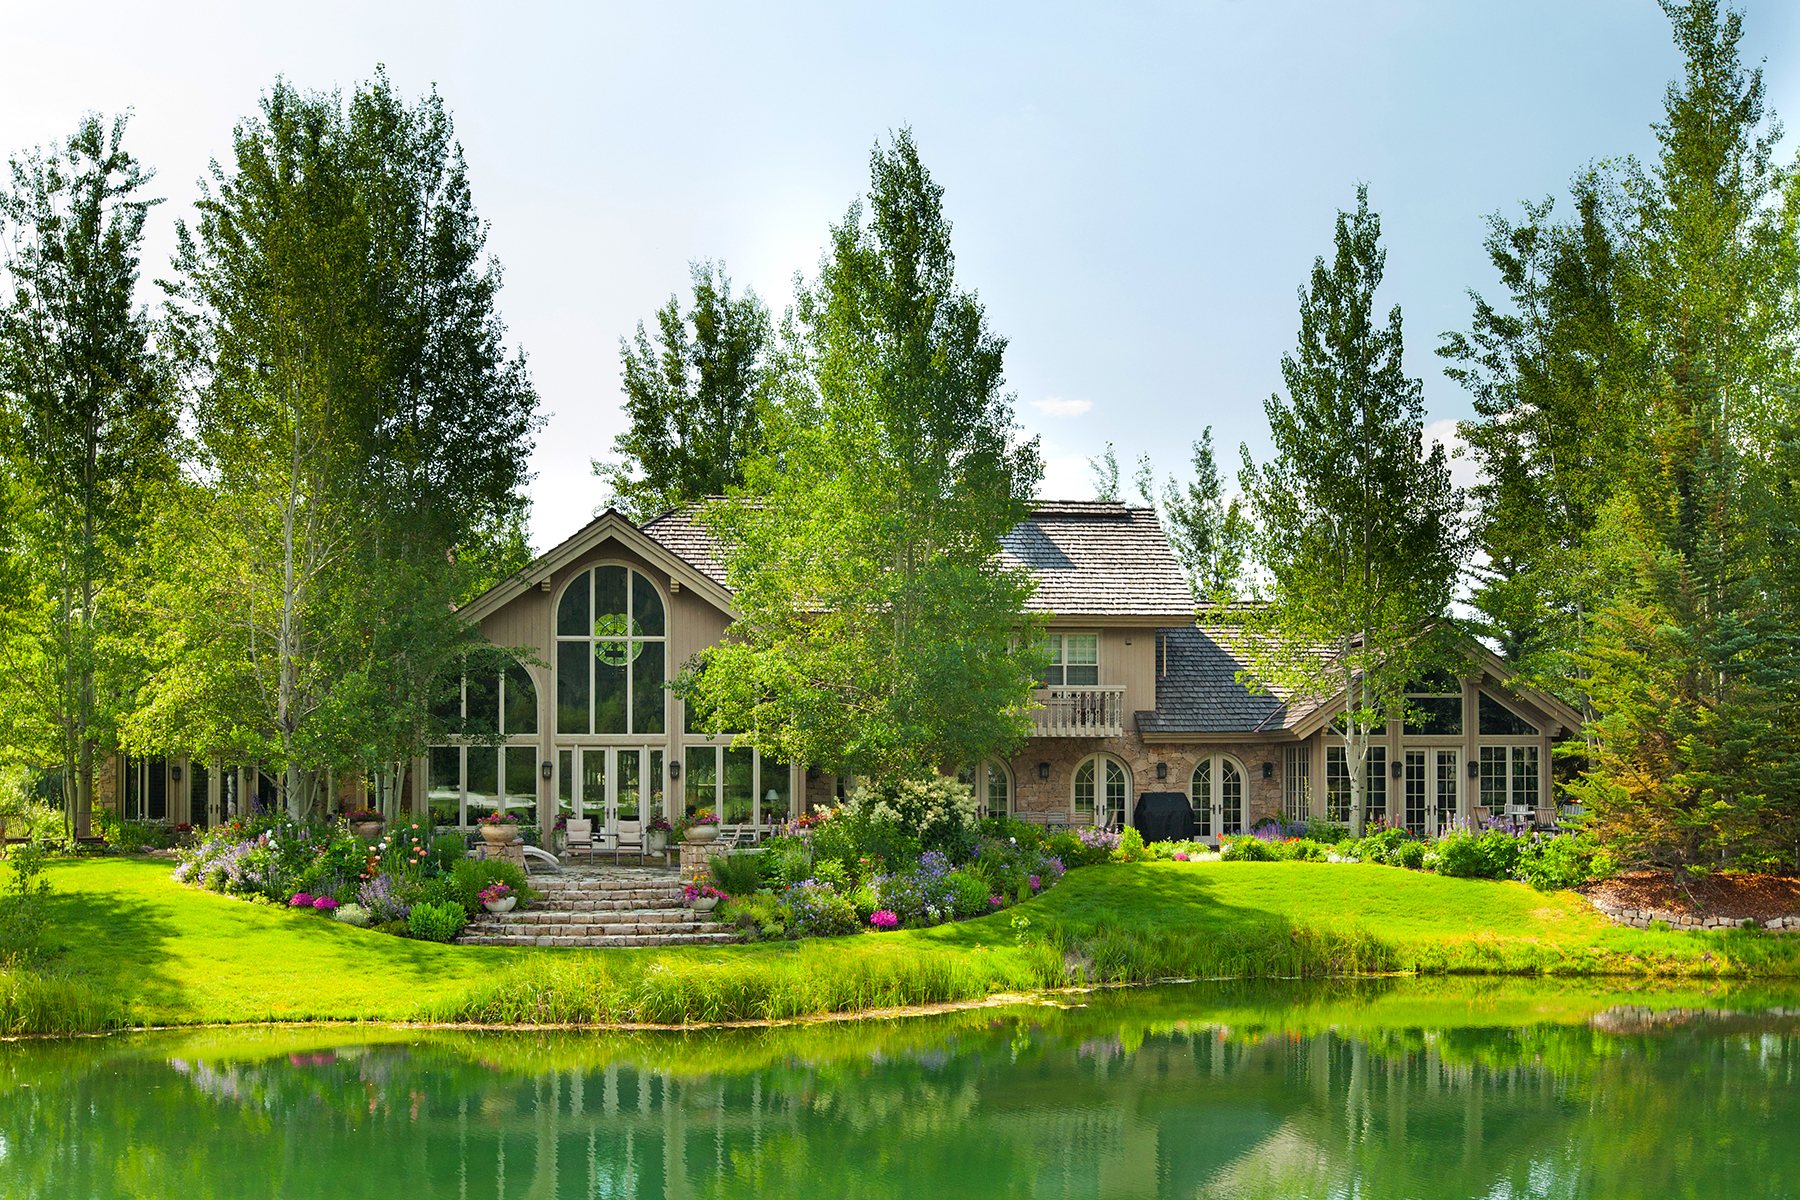 Single Family Homes for Sale at Timeless Teton Pines Estate 4275 GREENS PLACE Wilson, Wyoming 83014 United States